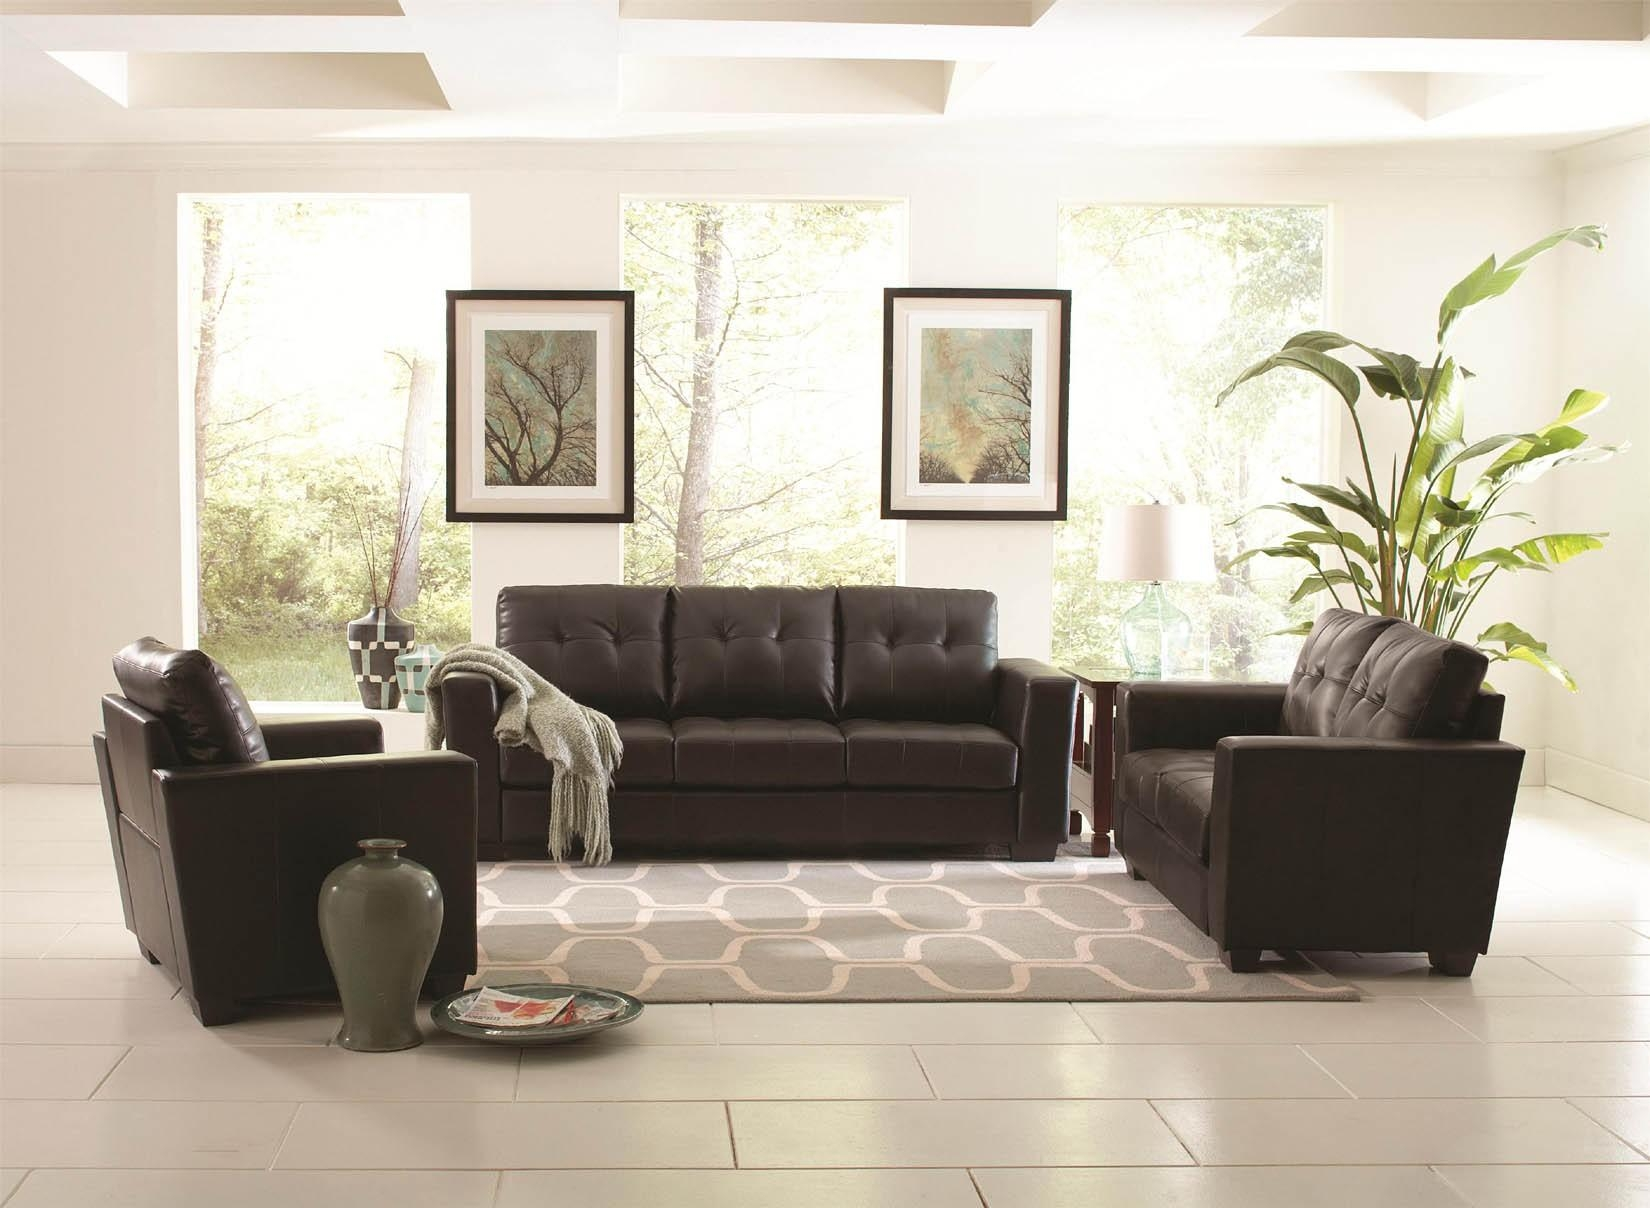 Colour Scheme For Living Room With Black Sofa – Destroybmx Intended For Sofas Black And White Colors (Image 12 of 20)